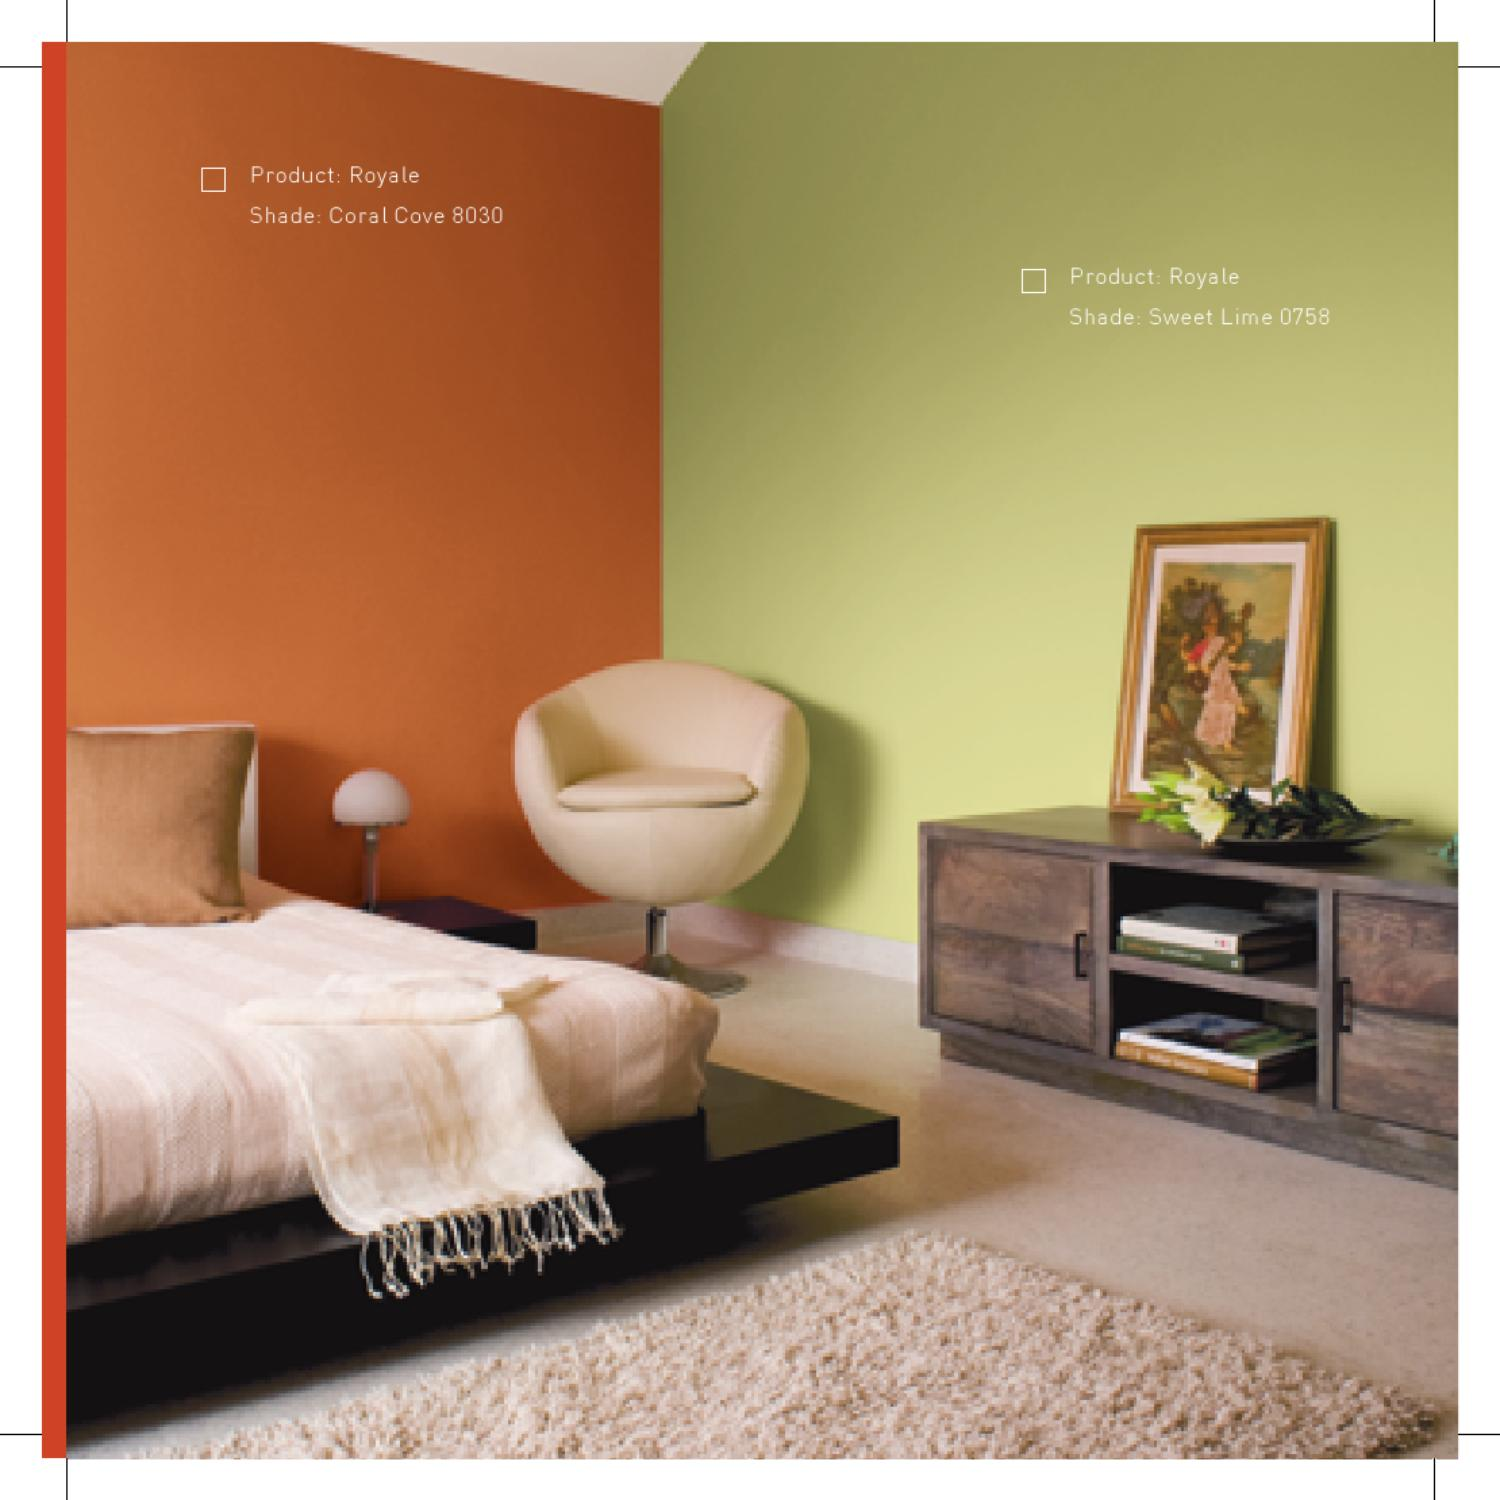 Ideas On Decor Book Web by Asian Paints Limited - issuu